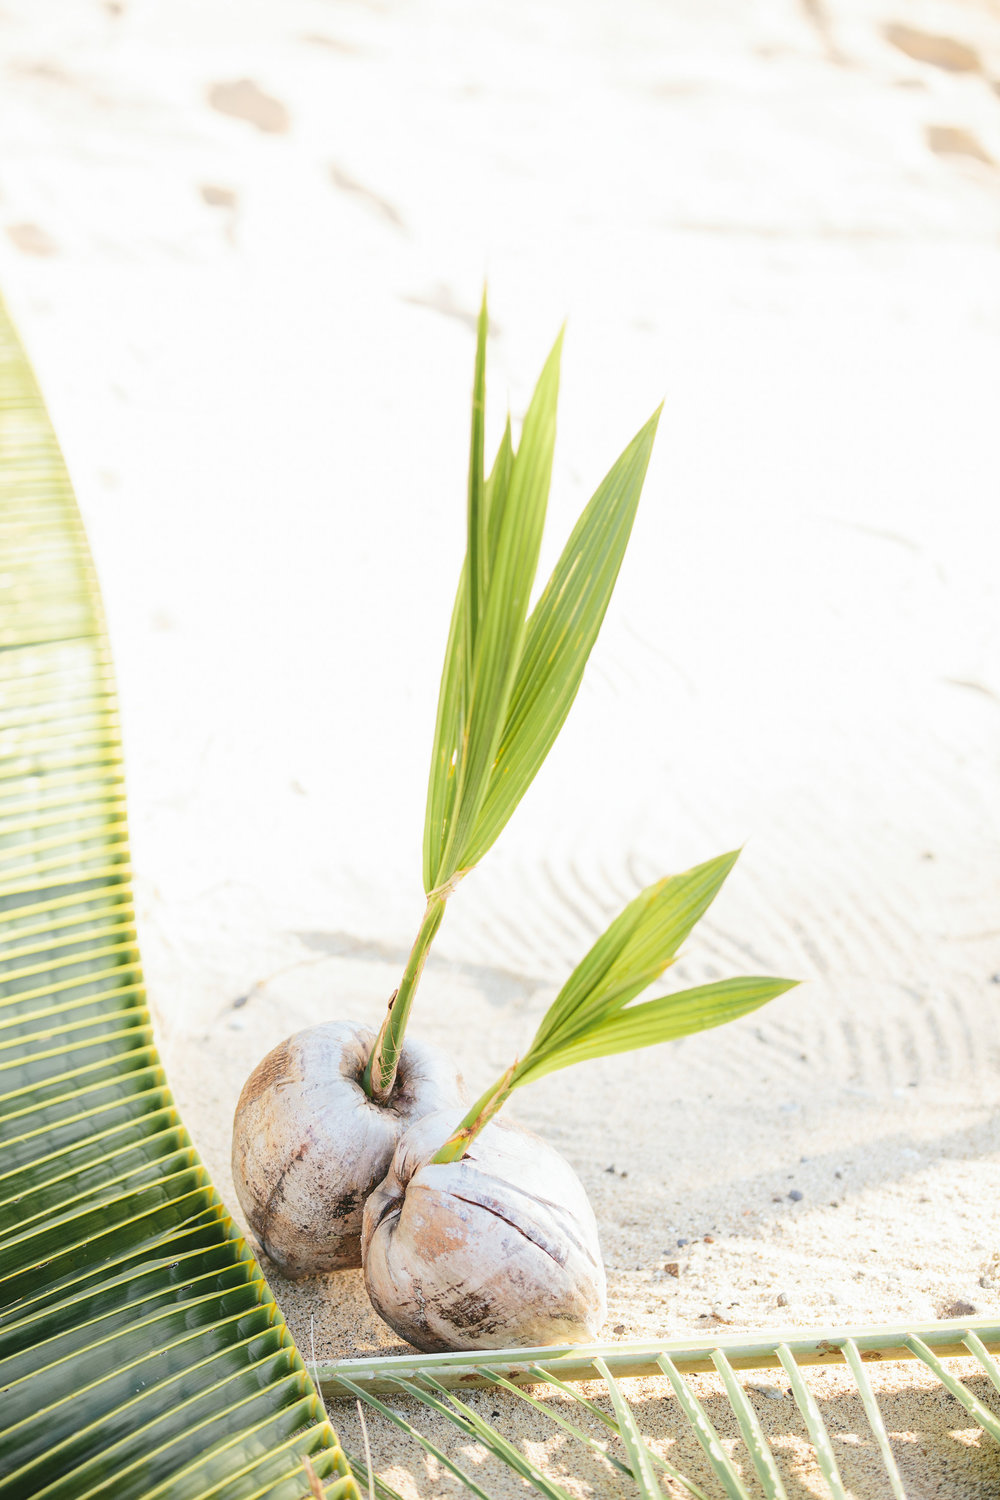 Fiji Coconut Aisle - Fiji Wedding Elopement - The Remote Resort Fiji Islands - Wedding Aisle decorations